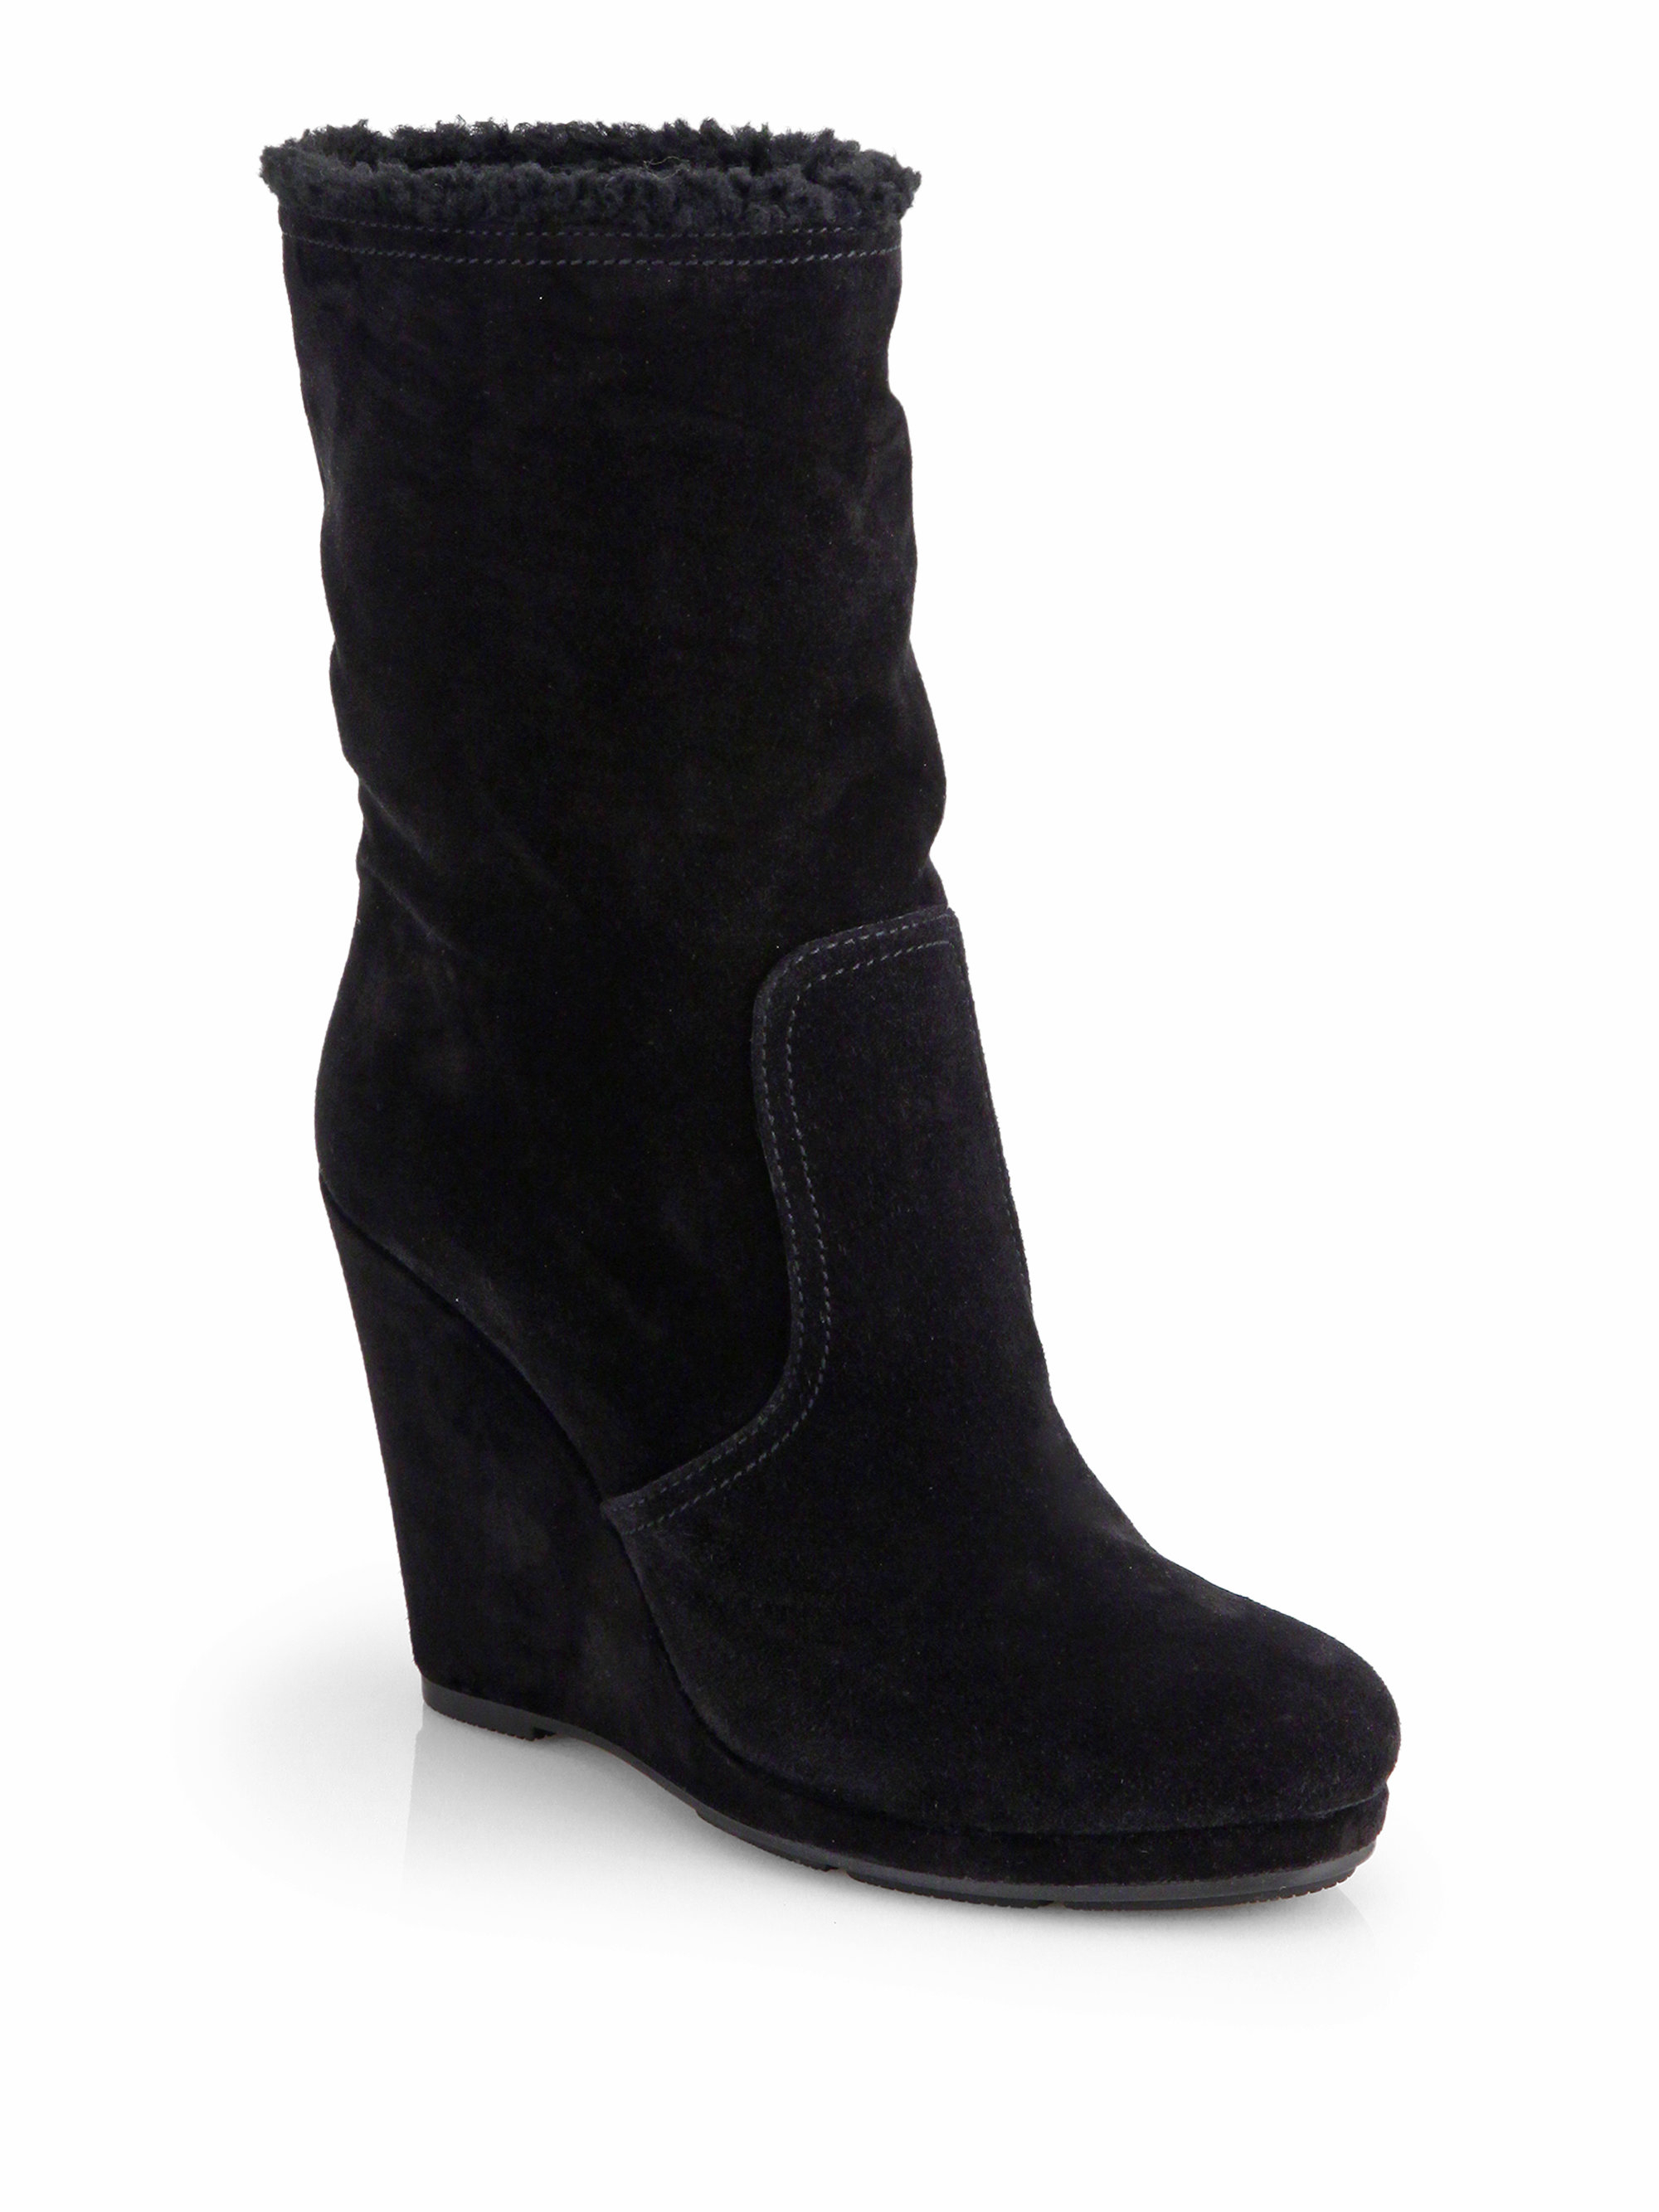 prada suede wedge midcalf boots in black nero black lyst